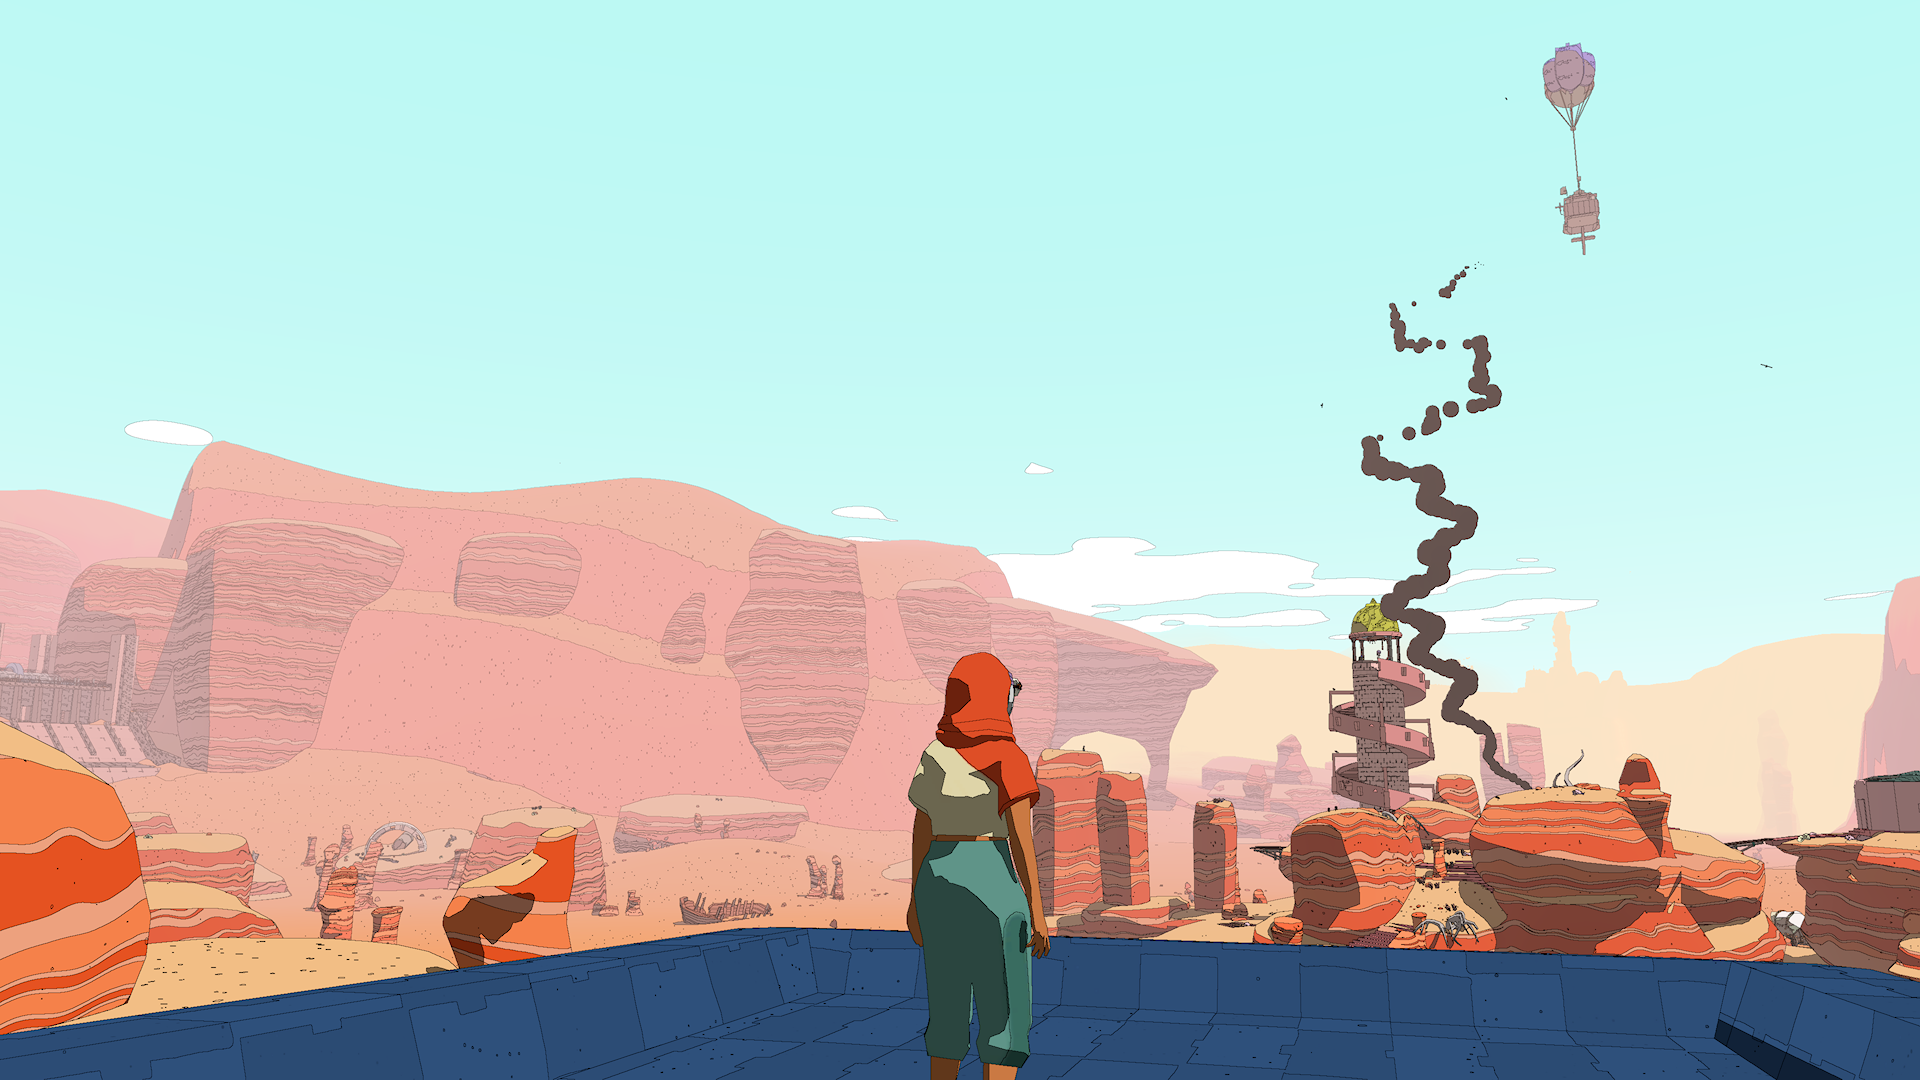 screenshot of Xbox game SABLE. the protagonist looks out over a rocky desert towards a small nomad camp